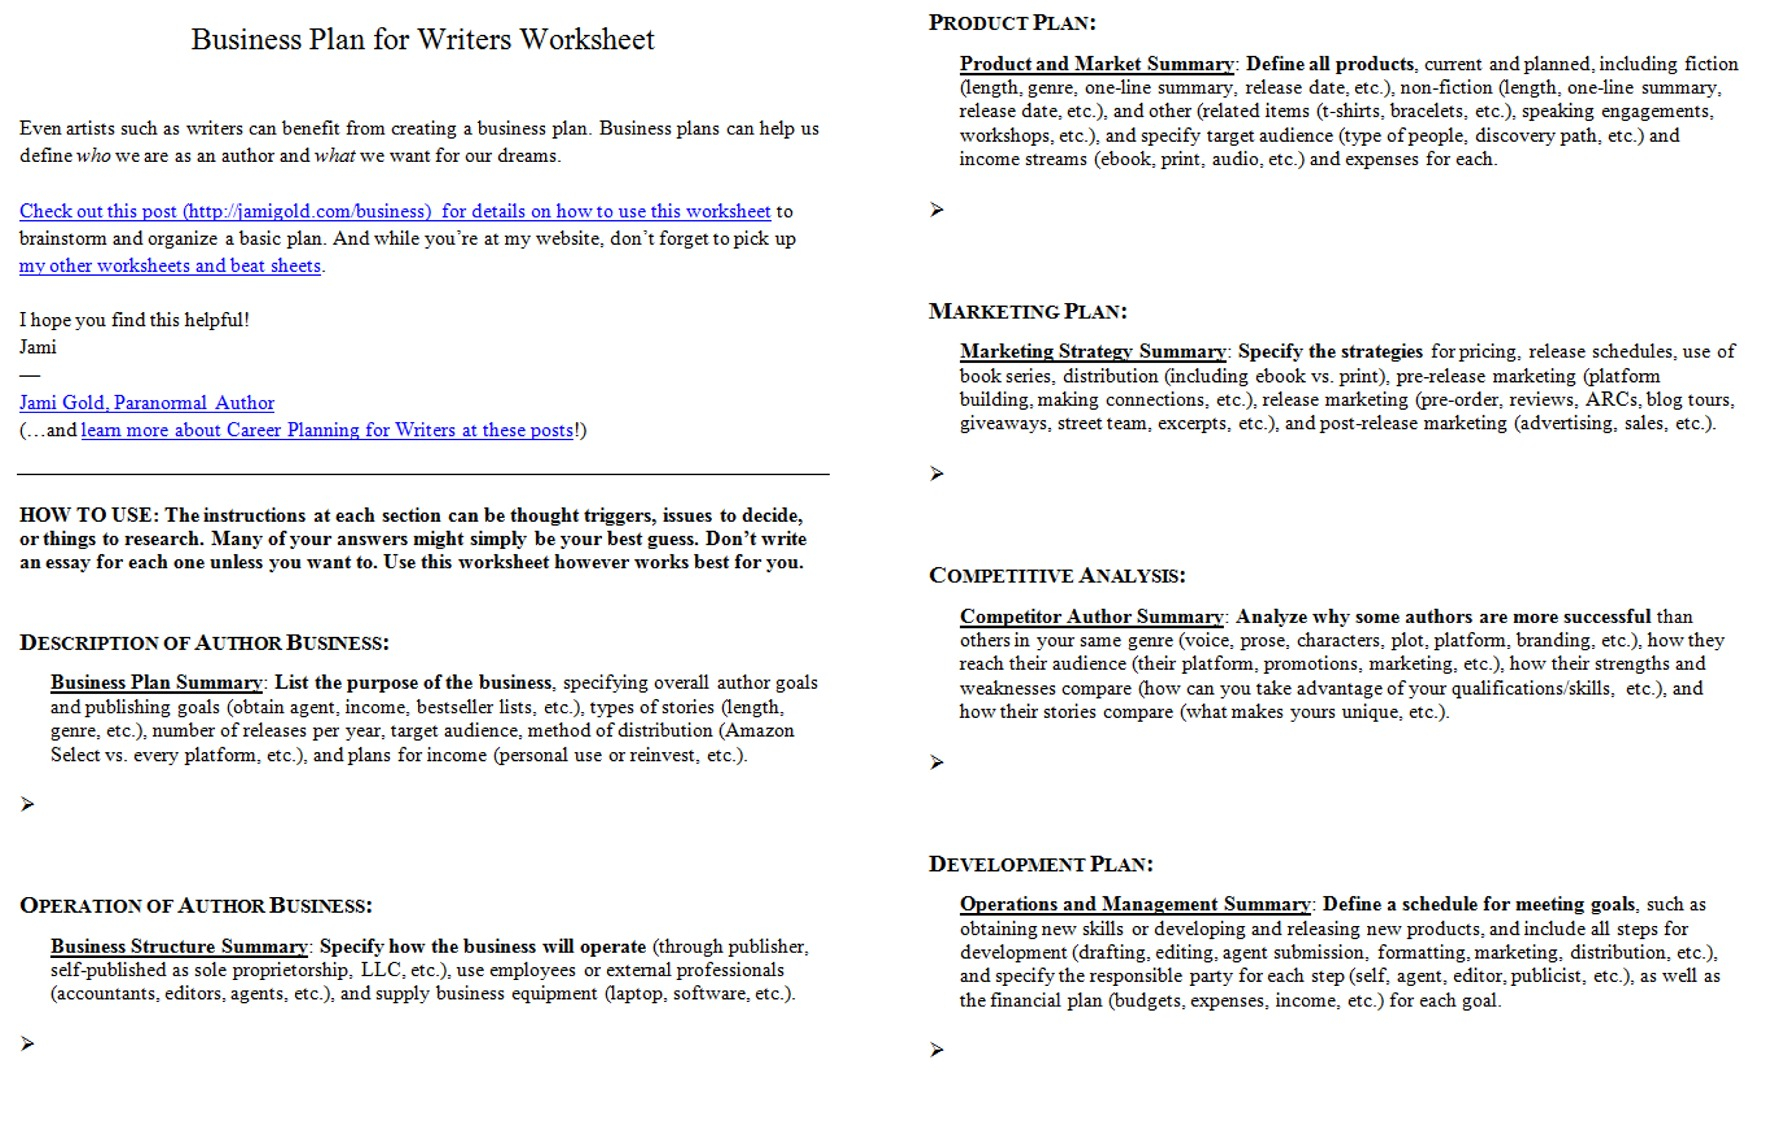 Aldiablosus  Gorgeous Worksheets For Writers  Jami Gold Paranormal Author With Hot Screen Shot Of Both Pages Of The Business Plan For Writers Worksheet With Charming Calculating Area And Perimeter Worksheet Also Place Value Worksheets Tens And Ones In Addition Free Printable Water Cycle Worksheets And Superlative Adjective Worksheet As Well As Polyhedron Worksheet Additionally Cool Worksheets From Jamigoldcom With Aldiablosus  Hot Worksheets For Writers  Jami Gold Paranormal Author With Charming Screen Shot Of Both Pages Of The Business Plan For Writers Worksheet And Gorgeous Calculating Area And Perimeter Worksheet Also Place Value Worksheets Tens And Ones In Addition Free Printable Water Cycle Worksheets From Jamigoldcom